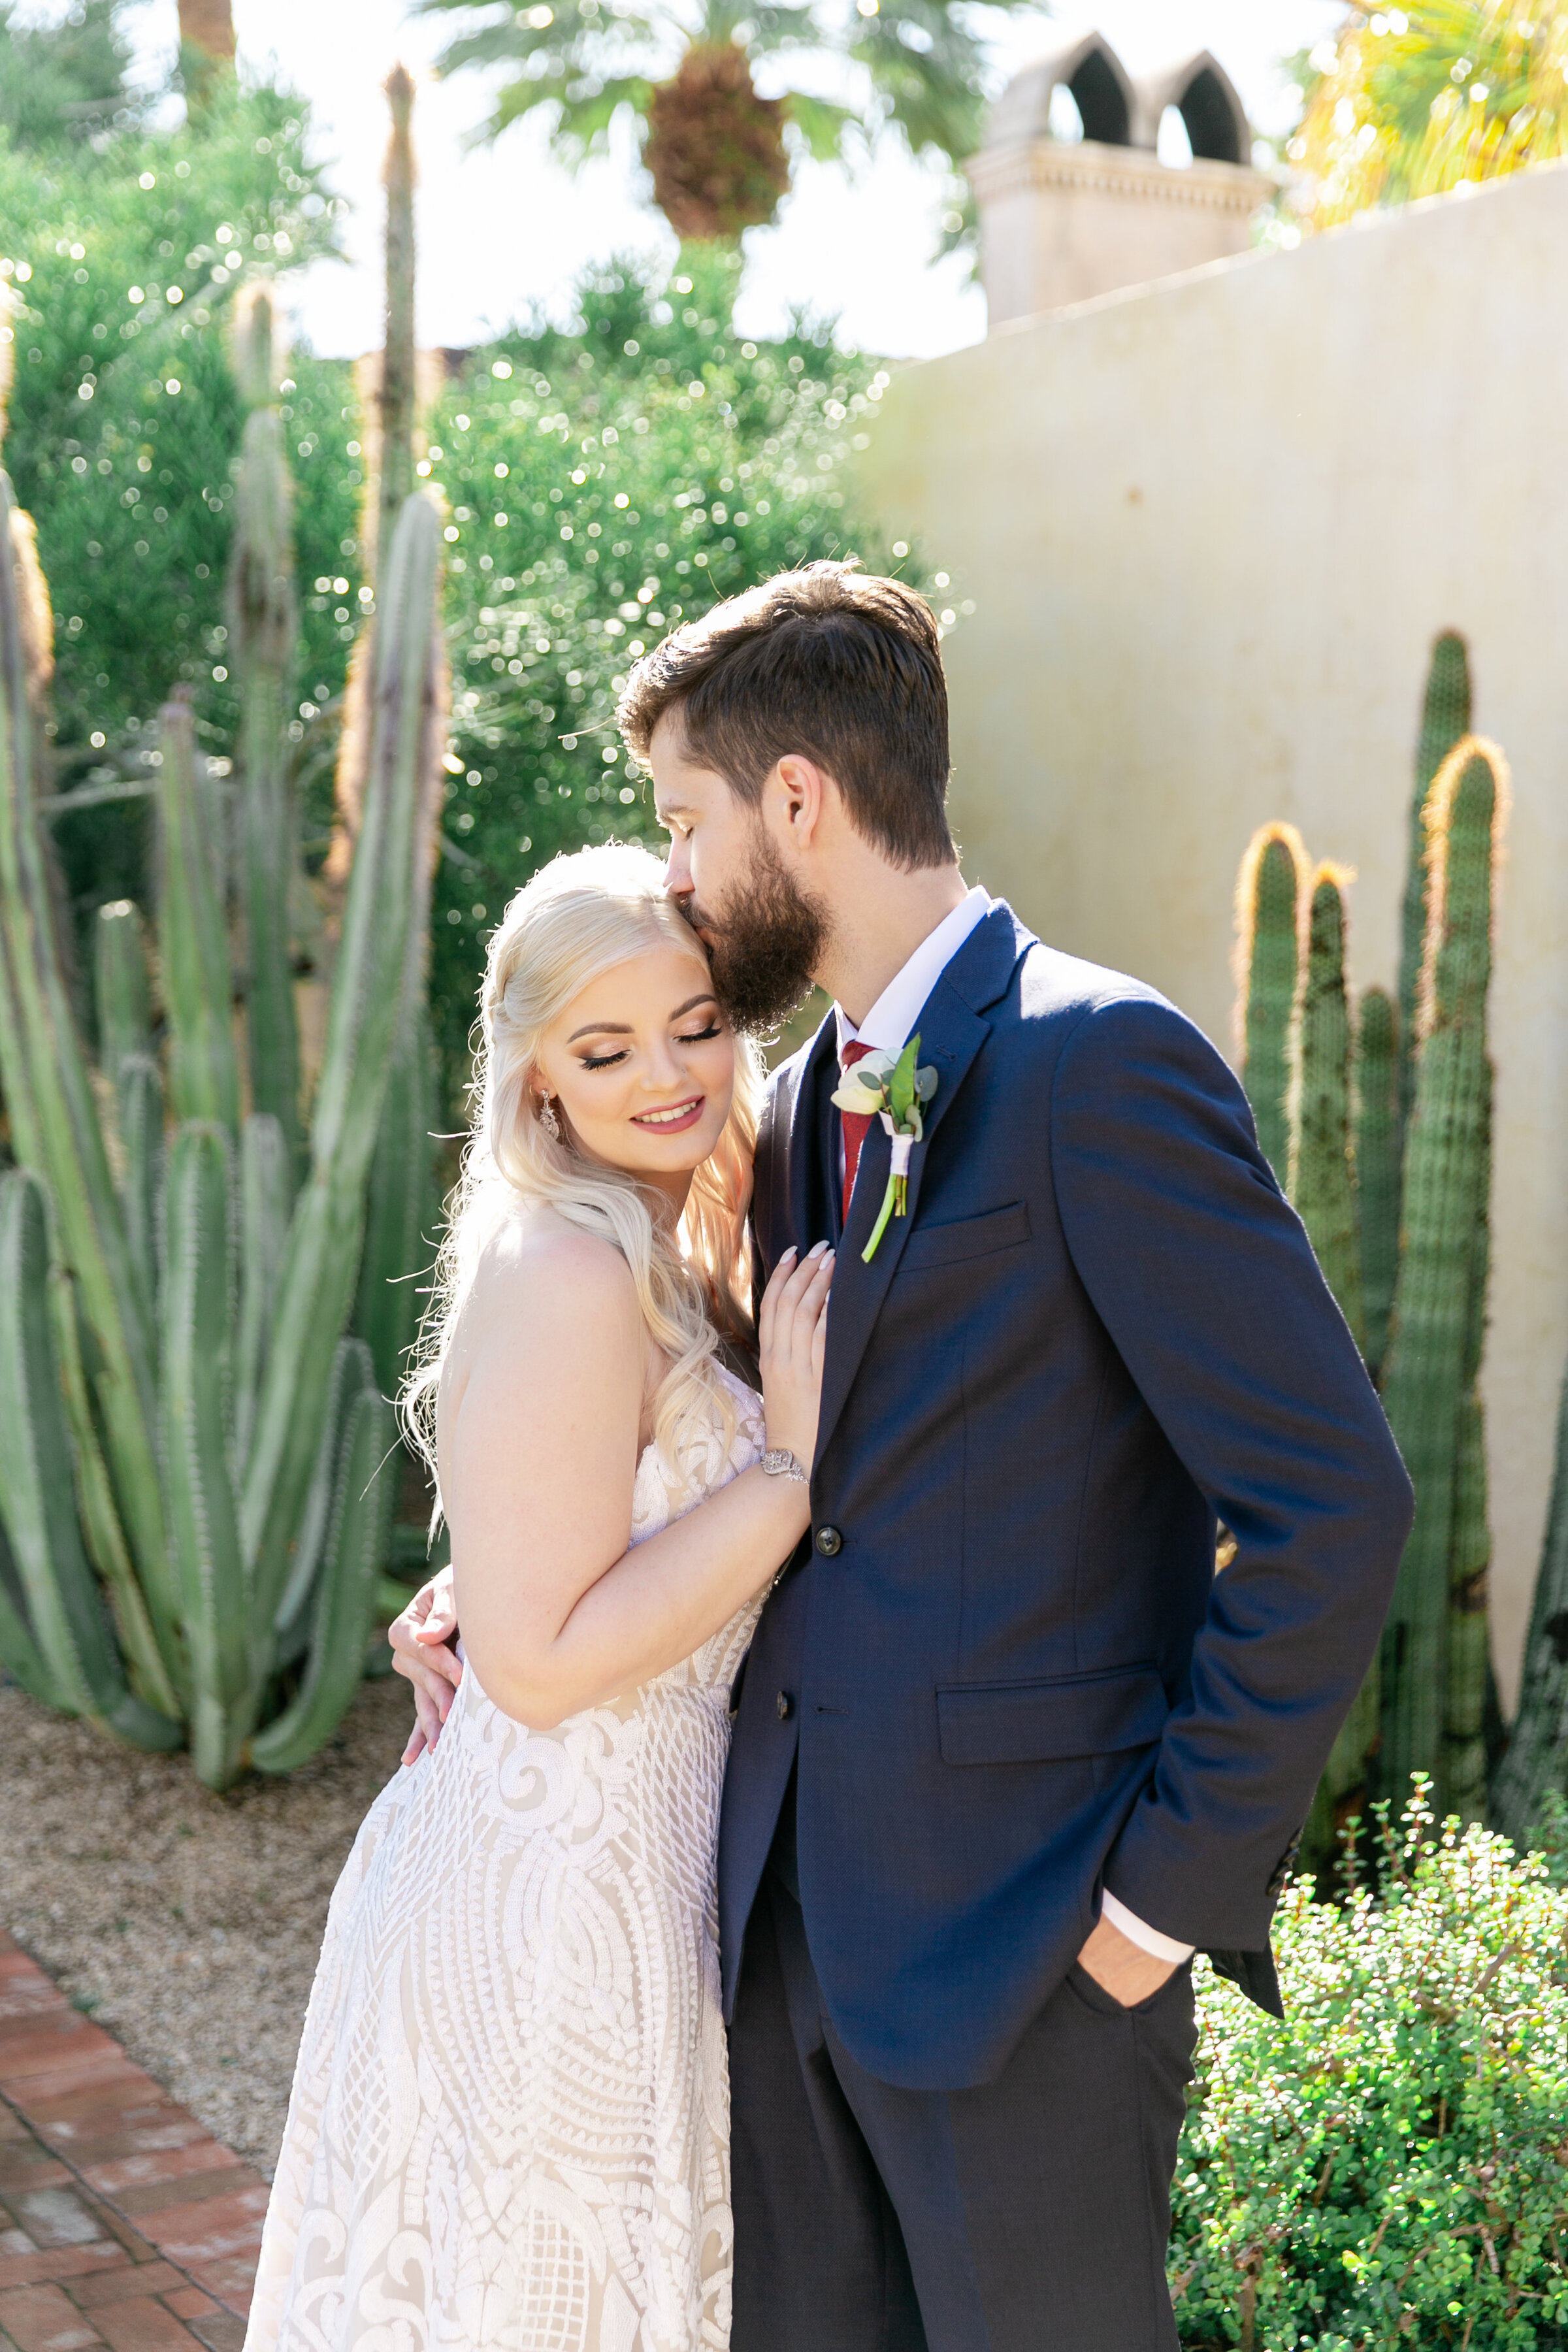 Karlie Colleen Photography - The Royal Palms Wedding - Some Like It Classic - Alex & Sam-154